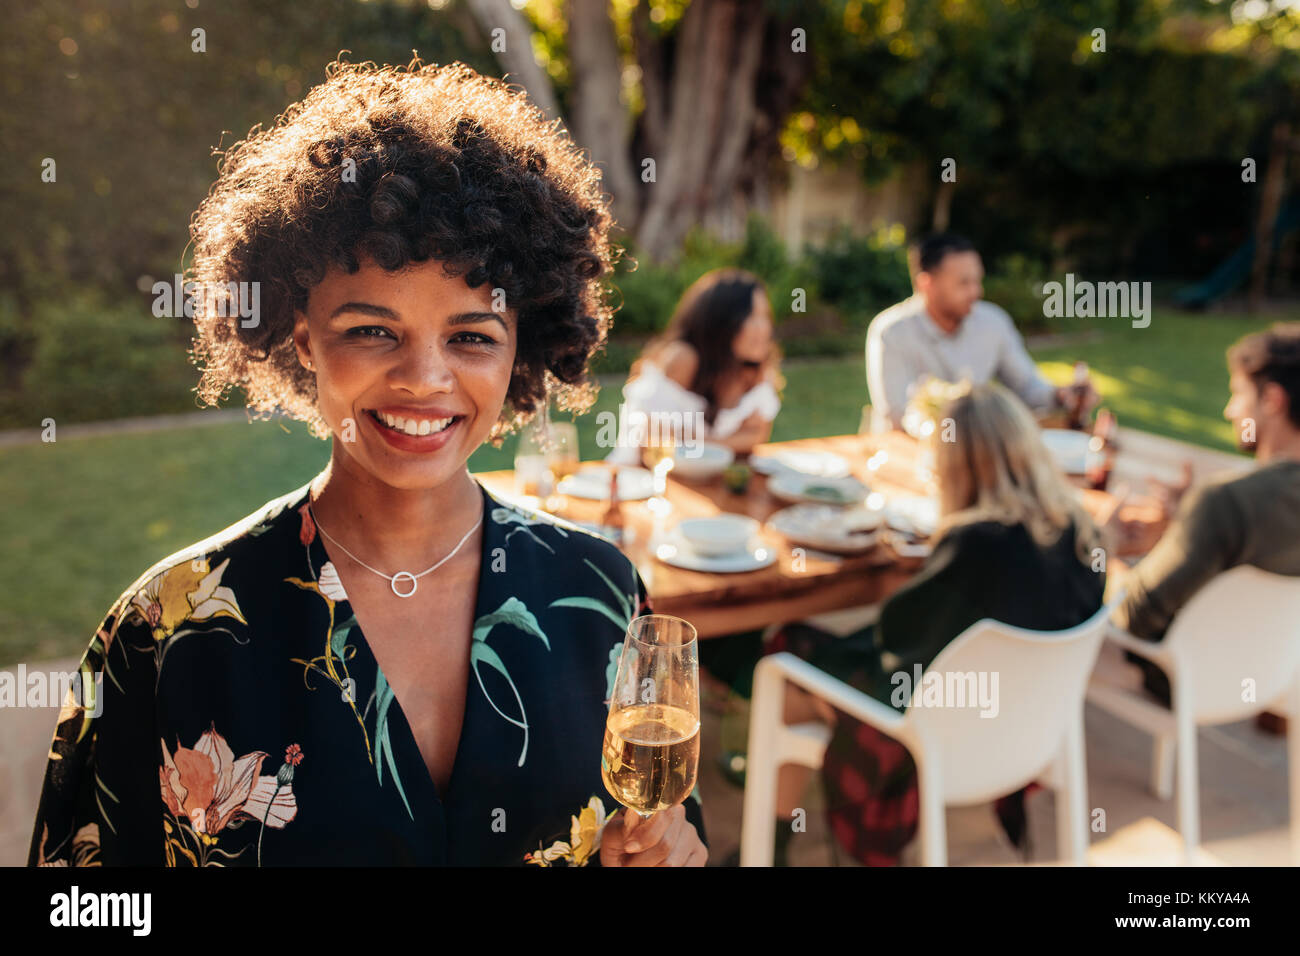 Smiling african woman standing outdoors with people sitting in background having food at party. Woman with a drinks - Stock Image